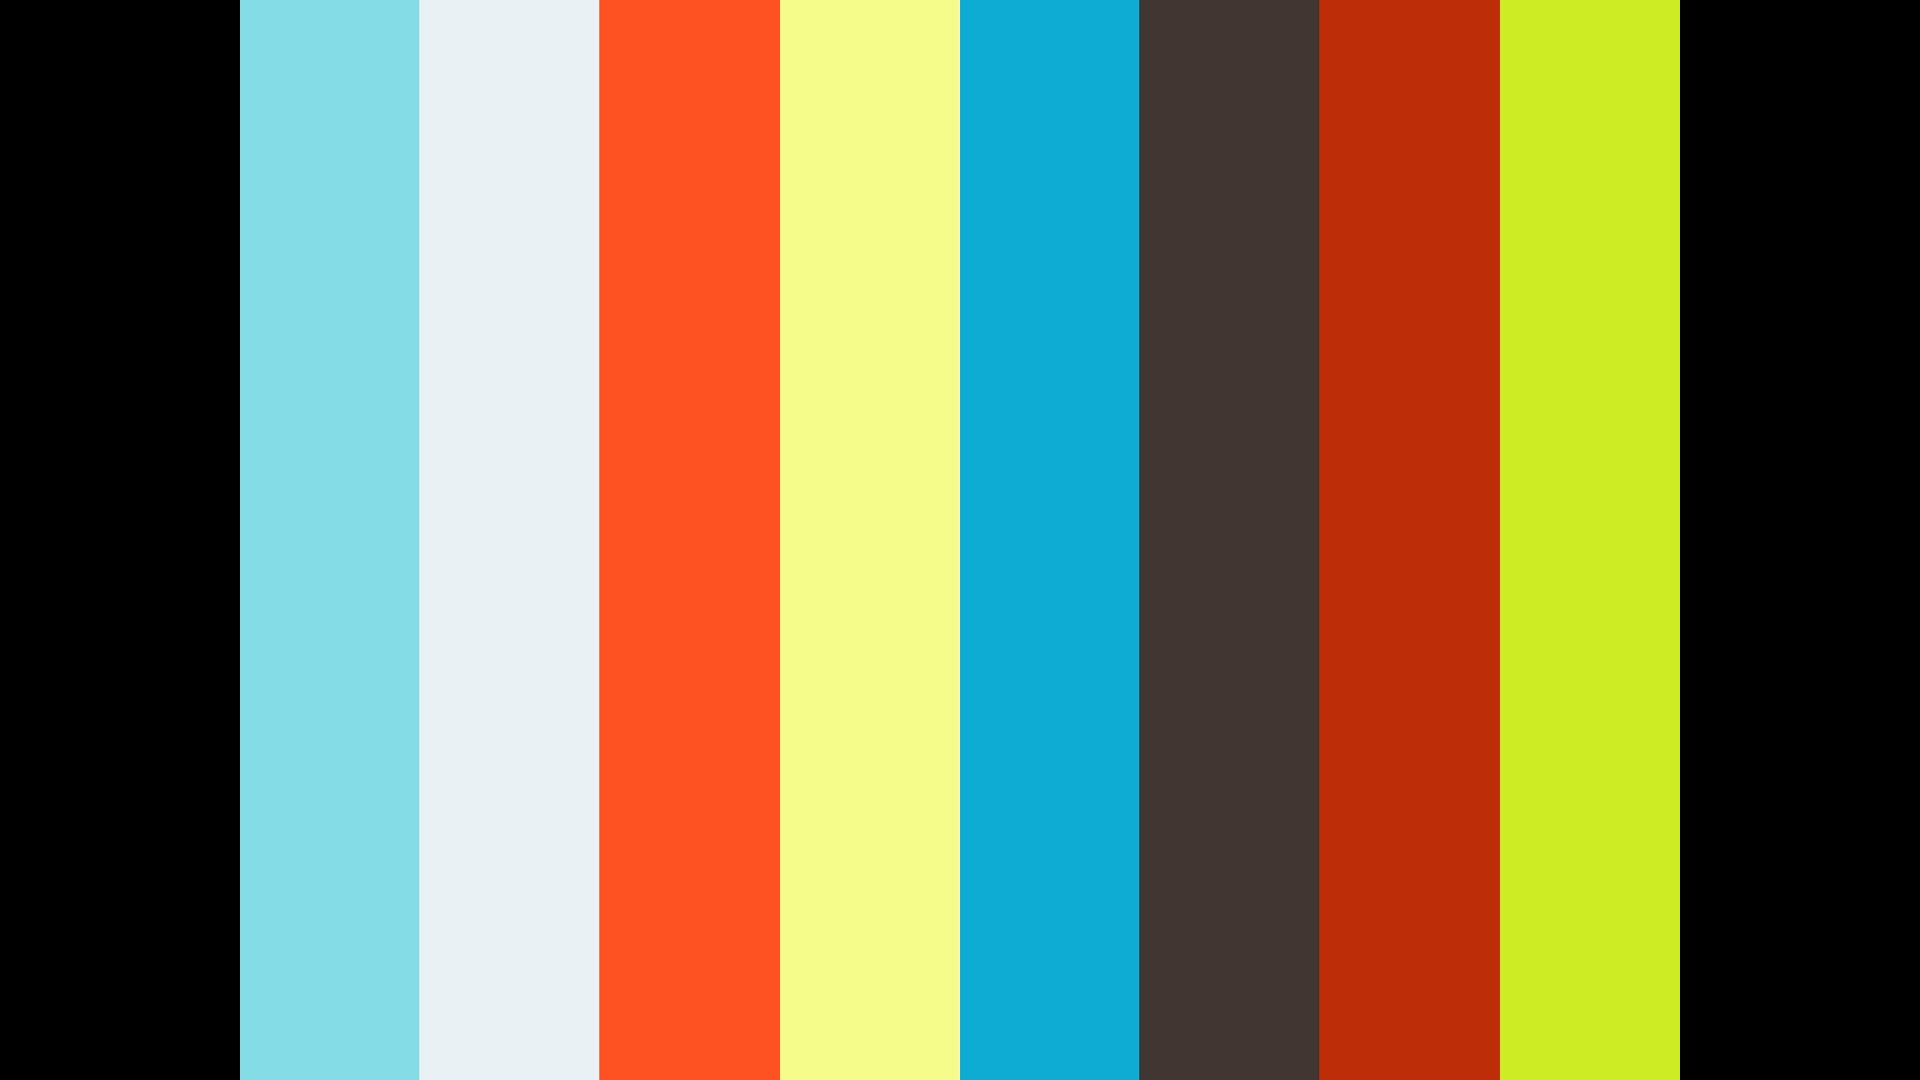 Untethered: On the Road Episode 7